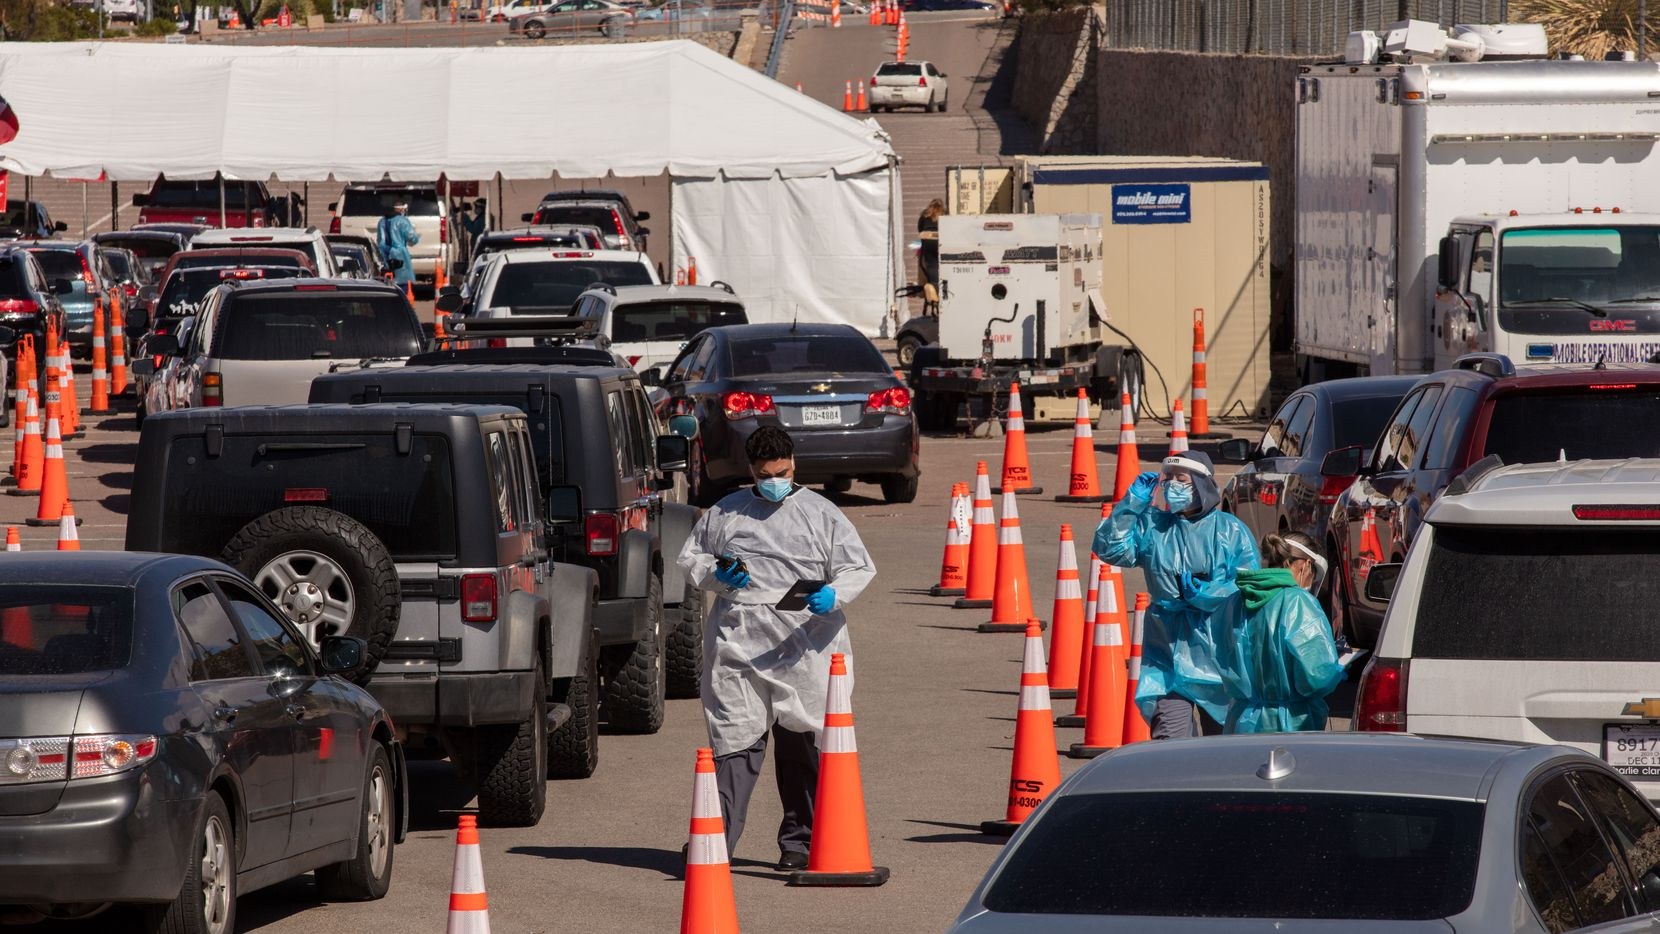 Lines at a COVID-19 testing cite at UTEP in El Paso. The city has been reporting high numbers of positive cases, and local hospitals were close to capacity on Oct. 28, 2020.